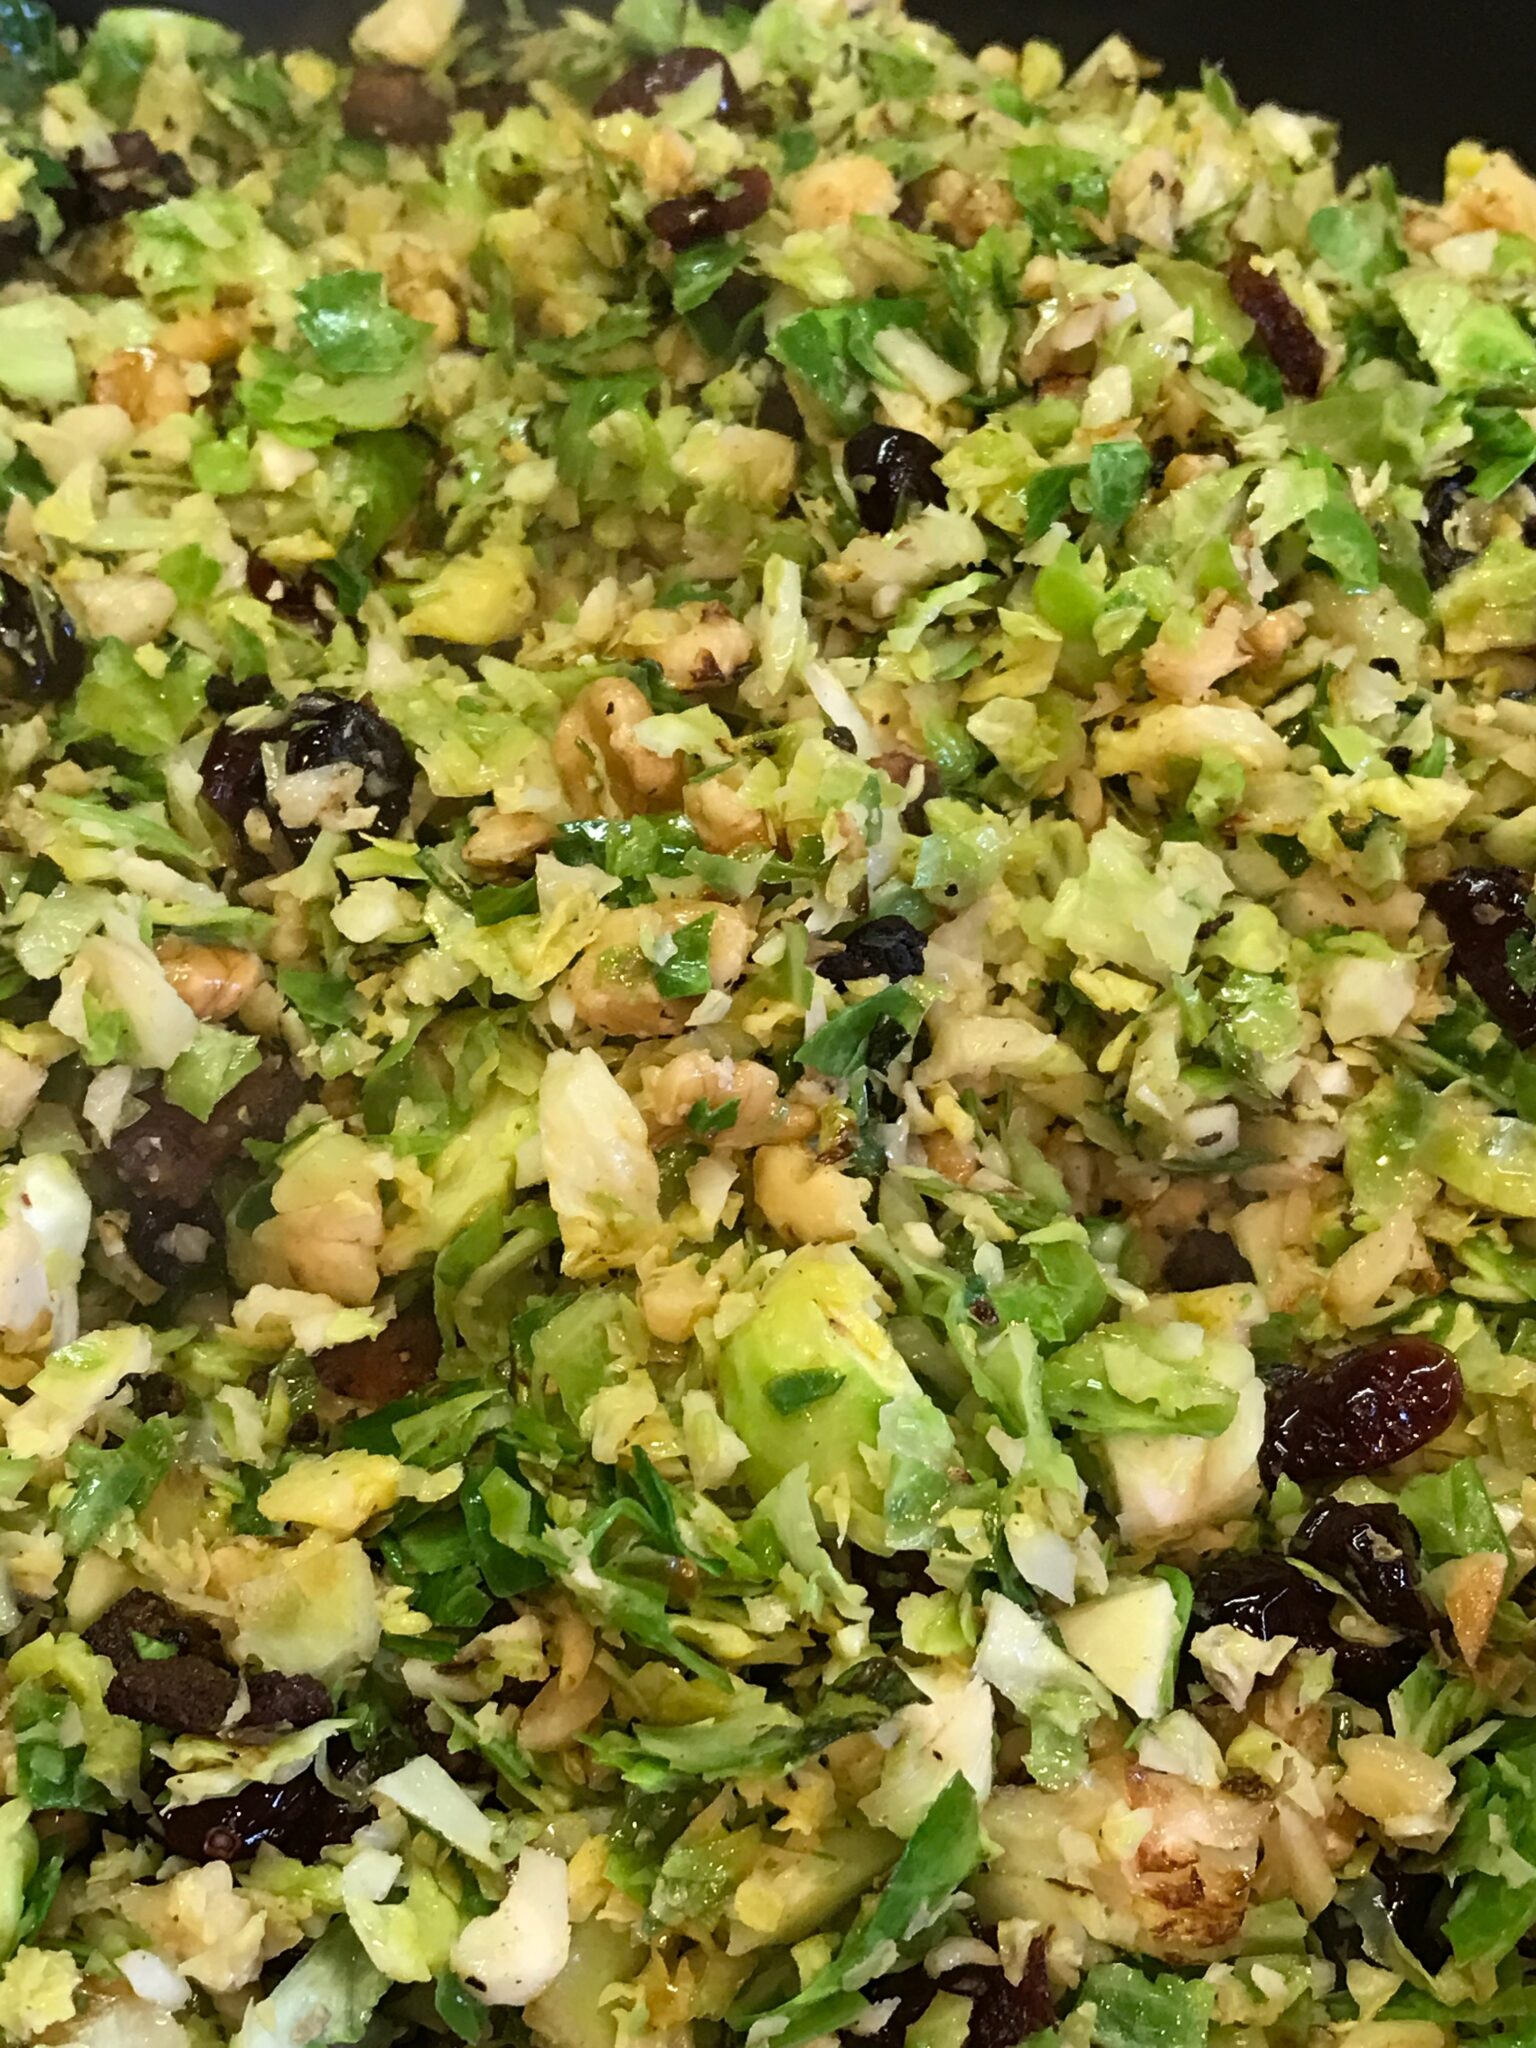 Copy Cat Warm Brussel Sprouts Slaw